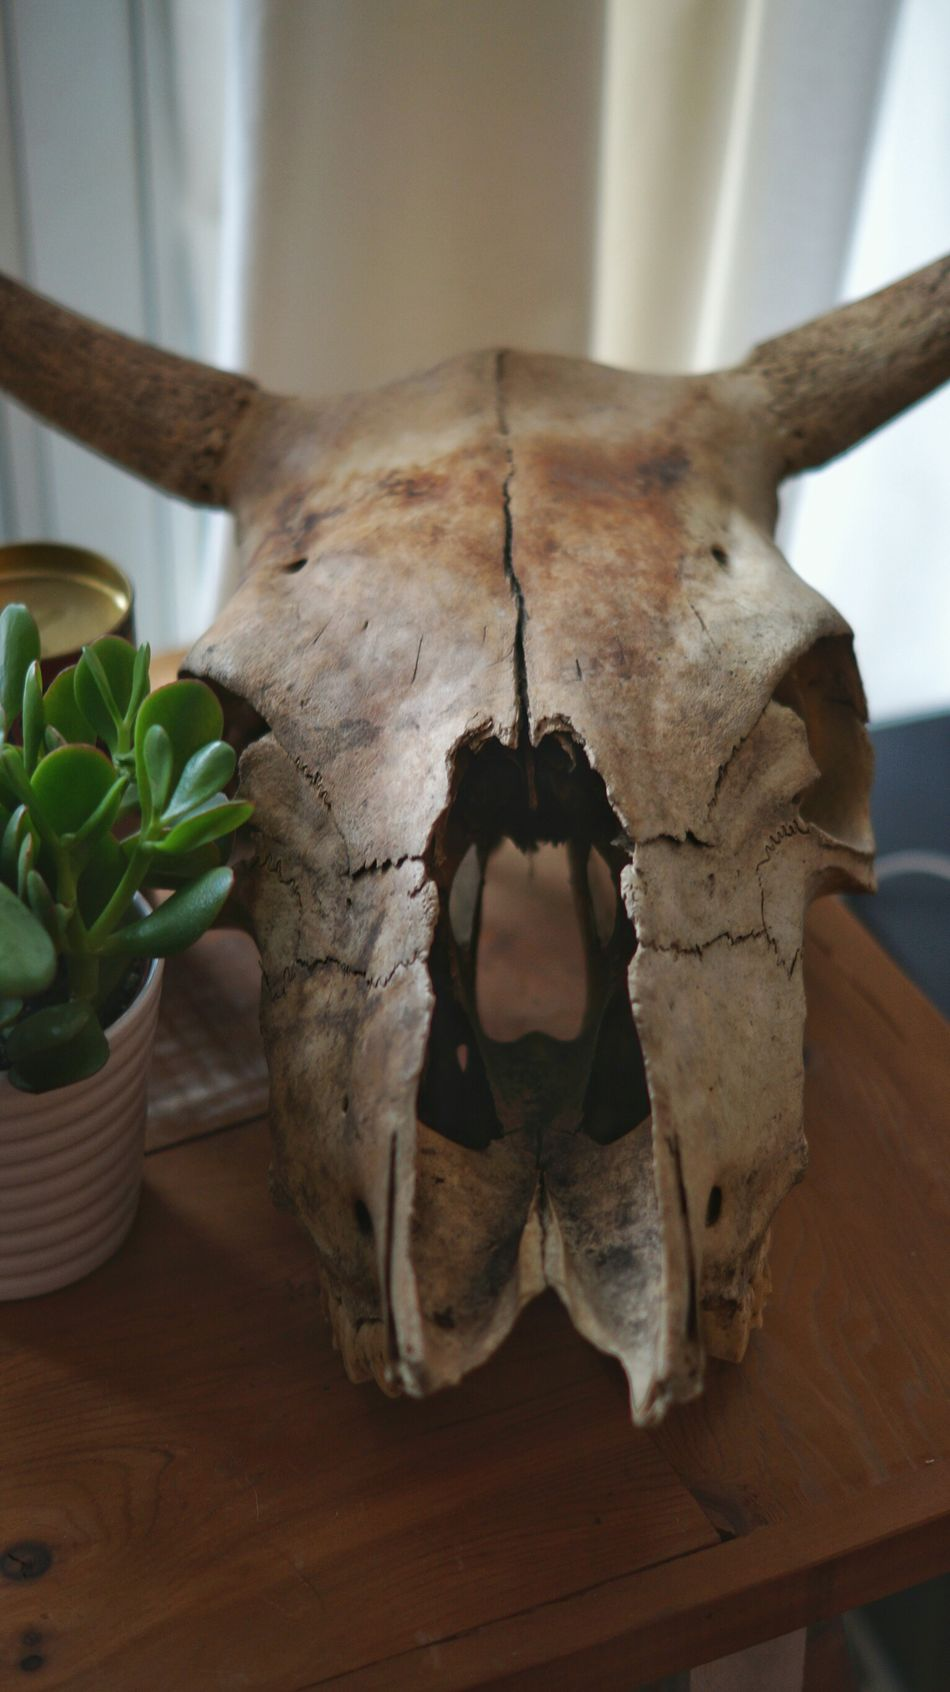 Indoors  No People Close-up Plant Table Freshness Nature Day Decorative Staging Skull Woodsy Indoor Plants Living Room House And Garden Green DIY